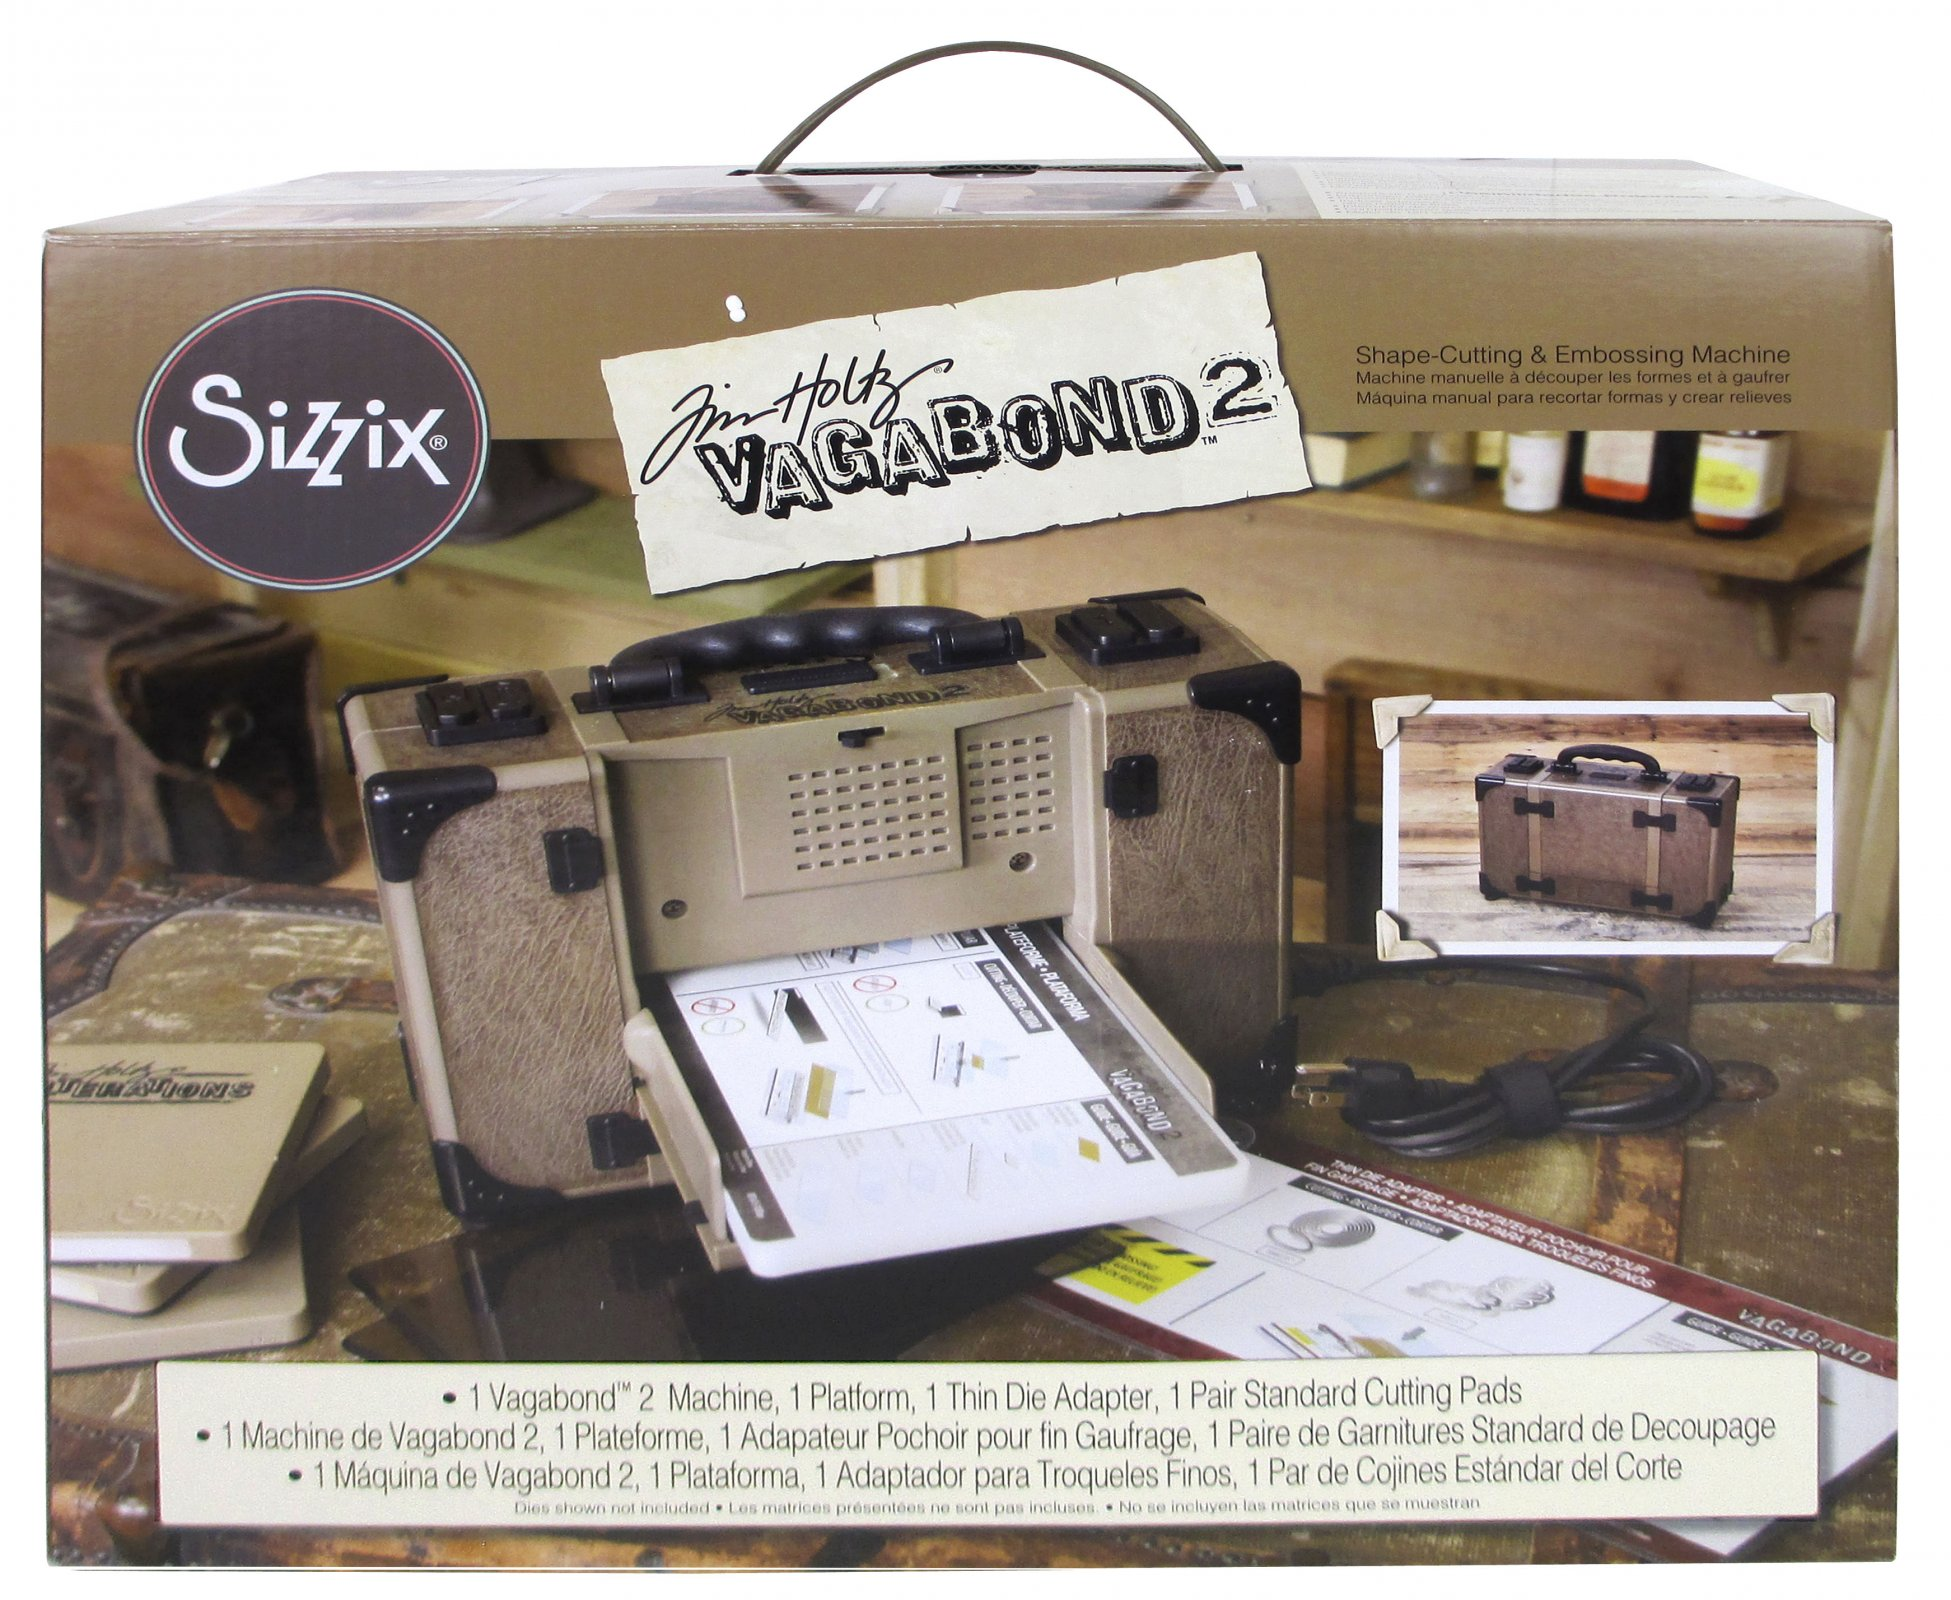 Sizzix Vagabond 2 Machine Only